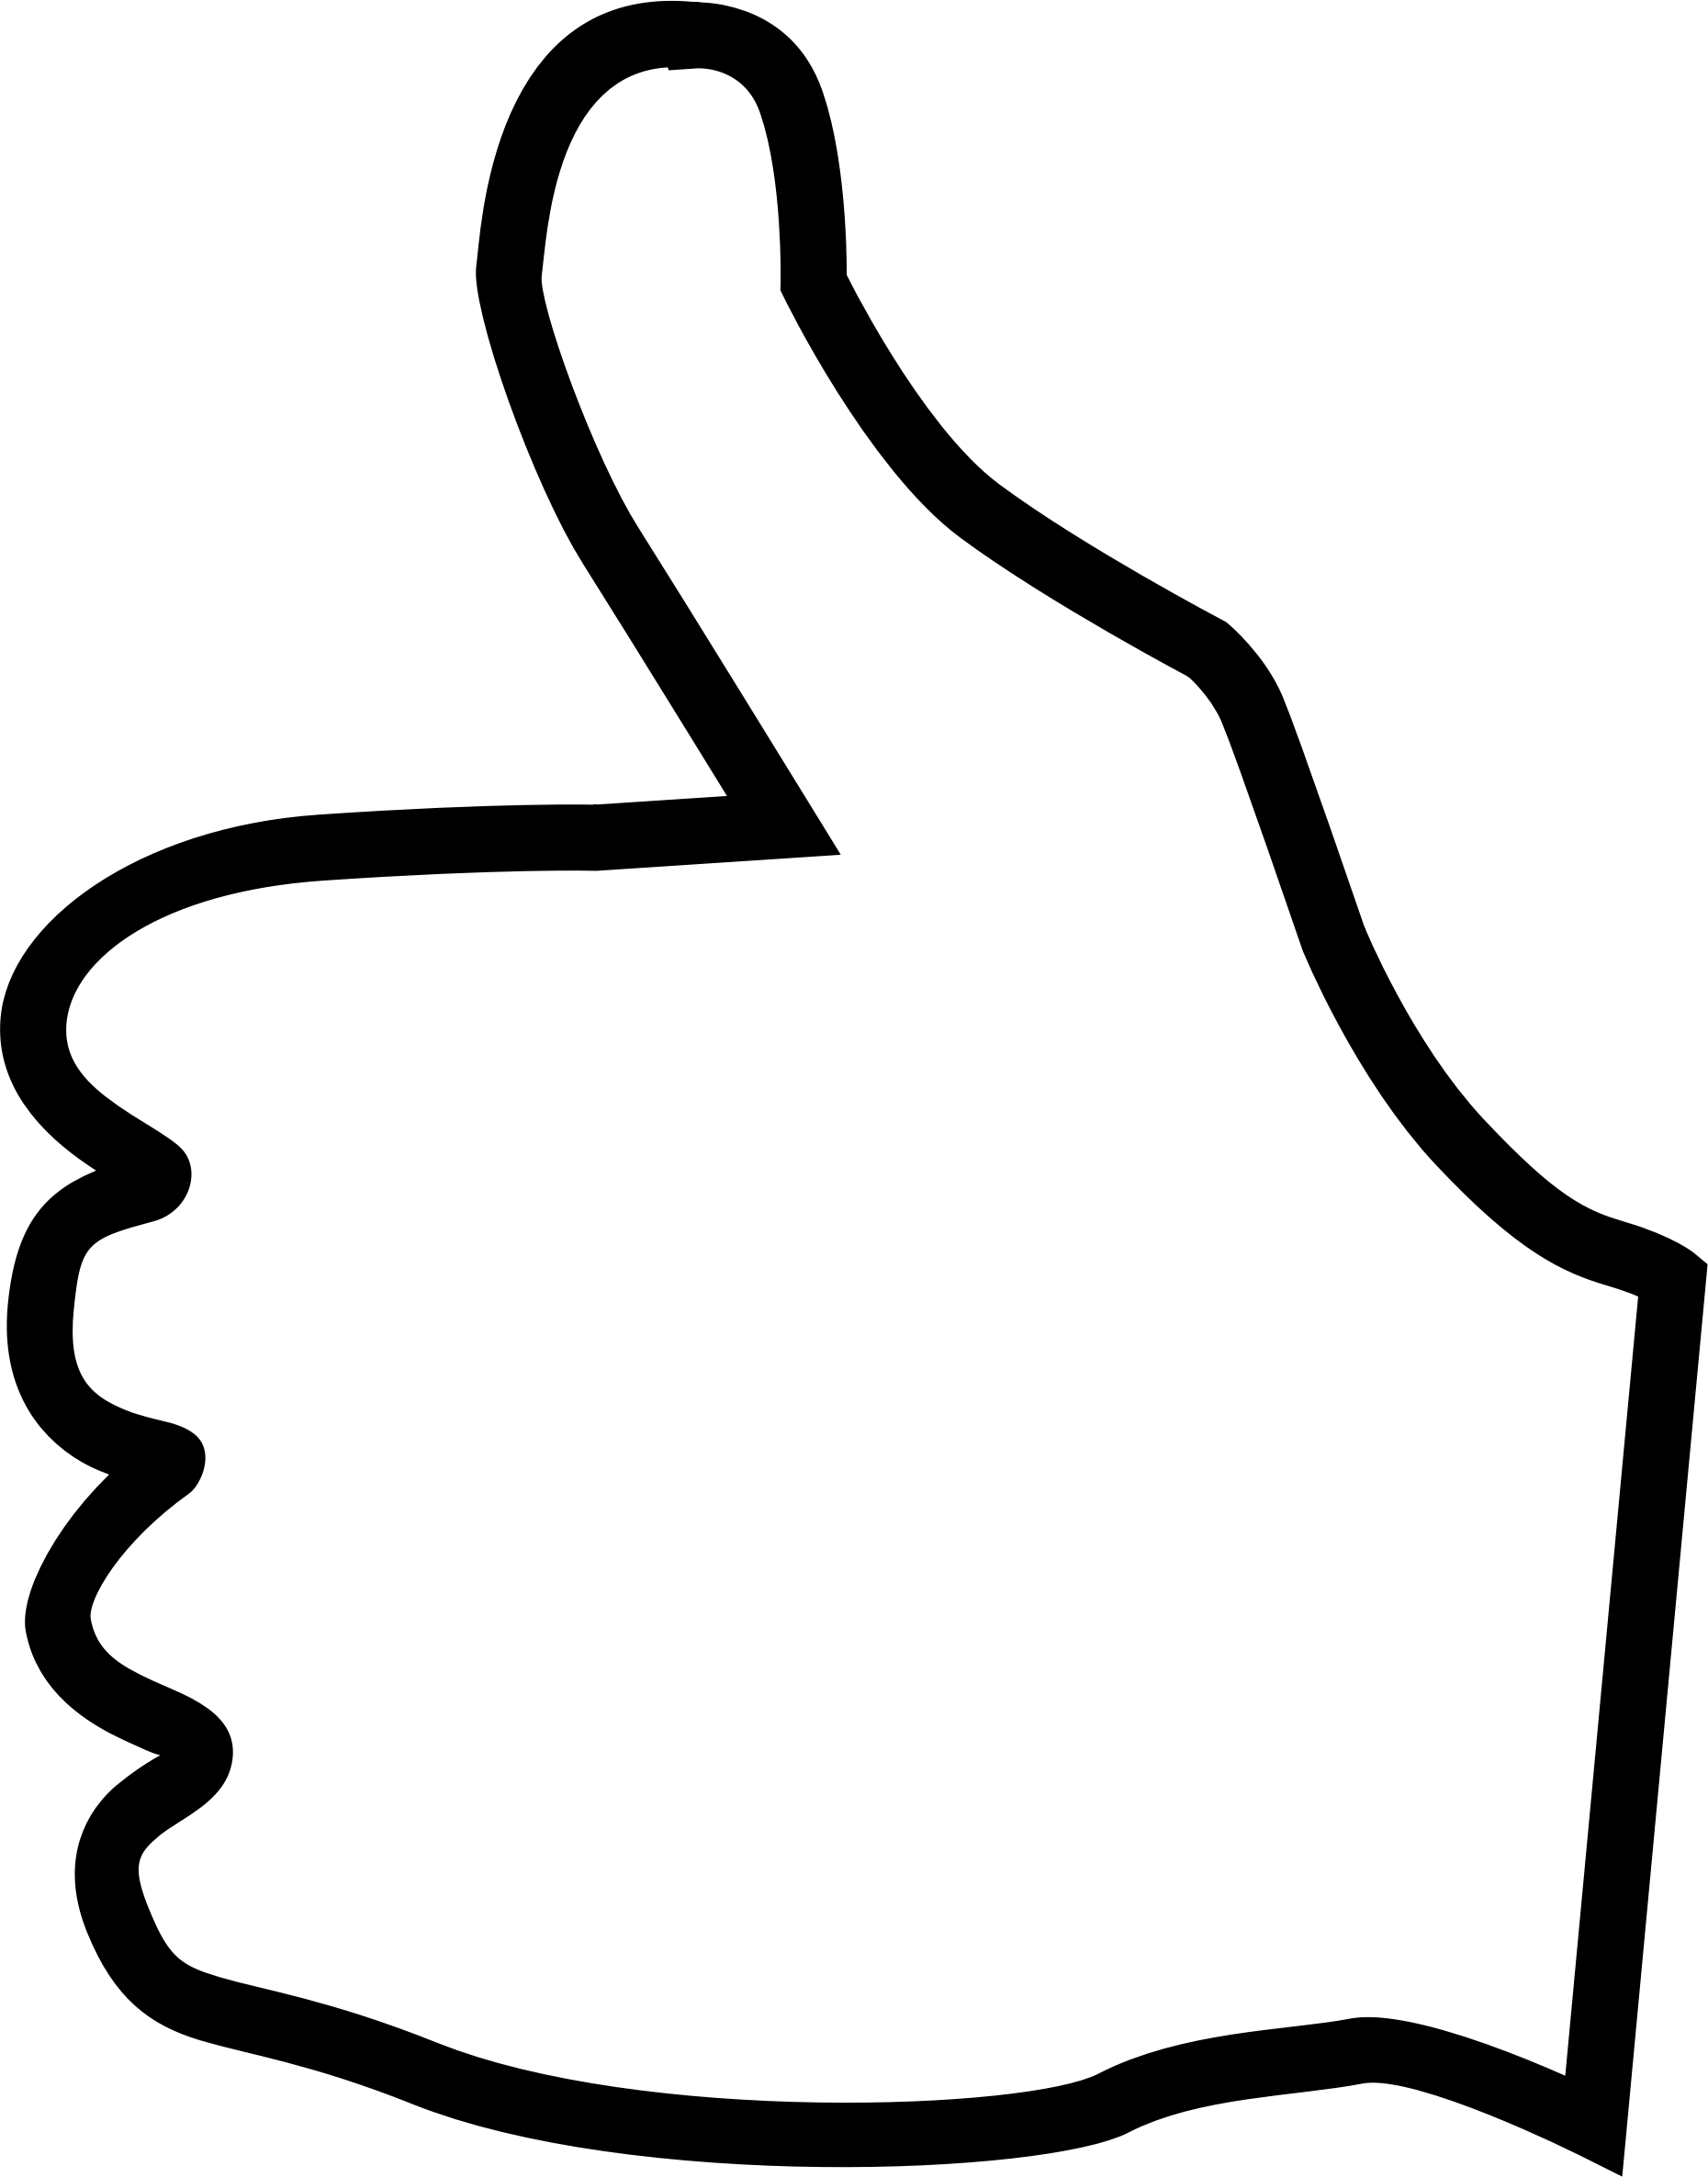 Clipart Thumbs Up